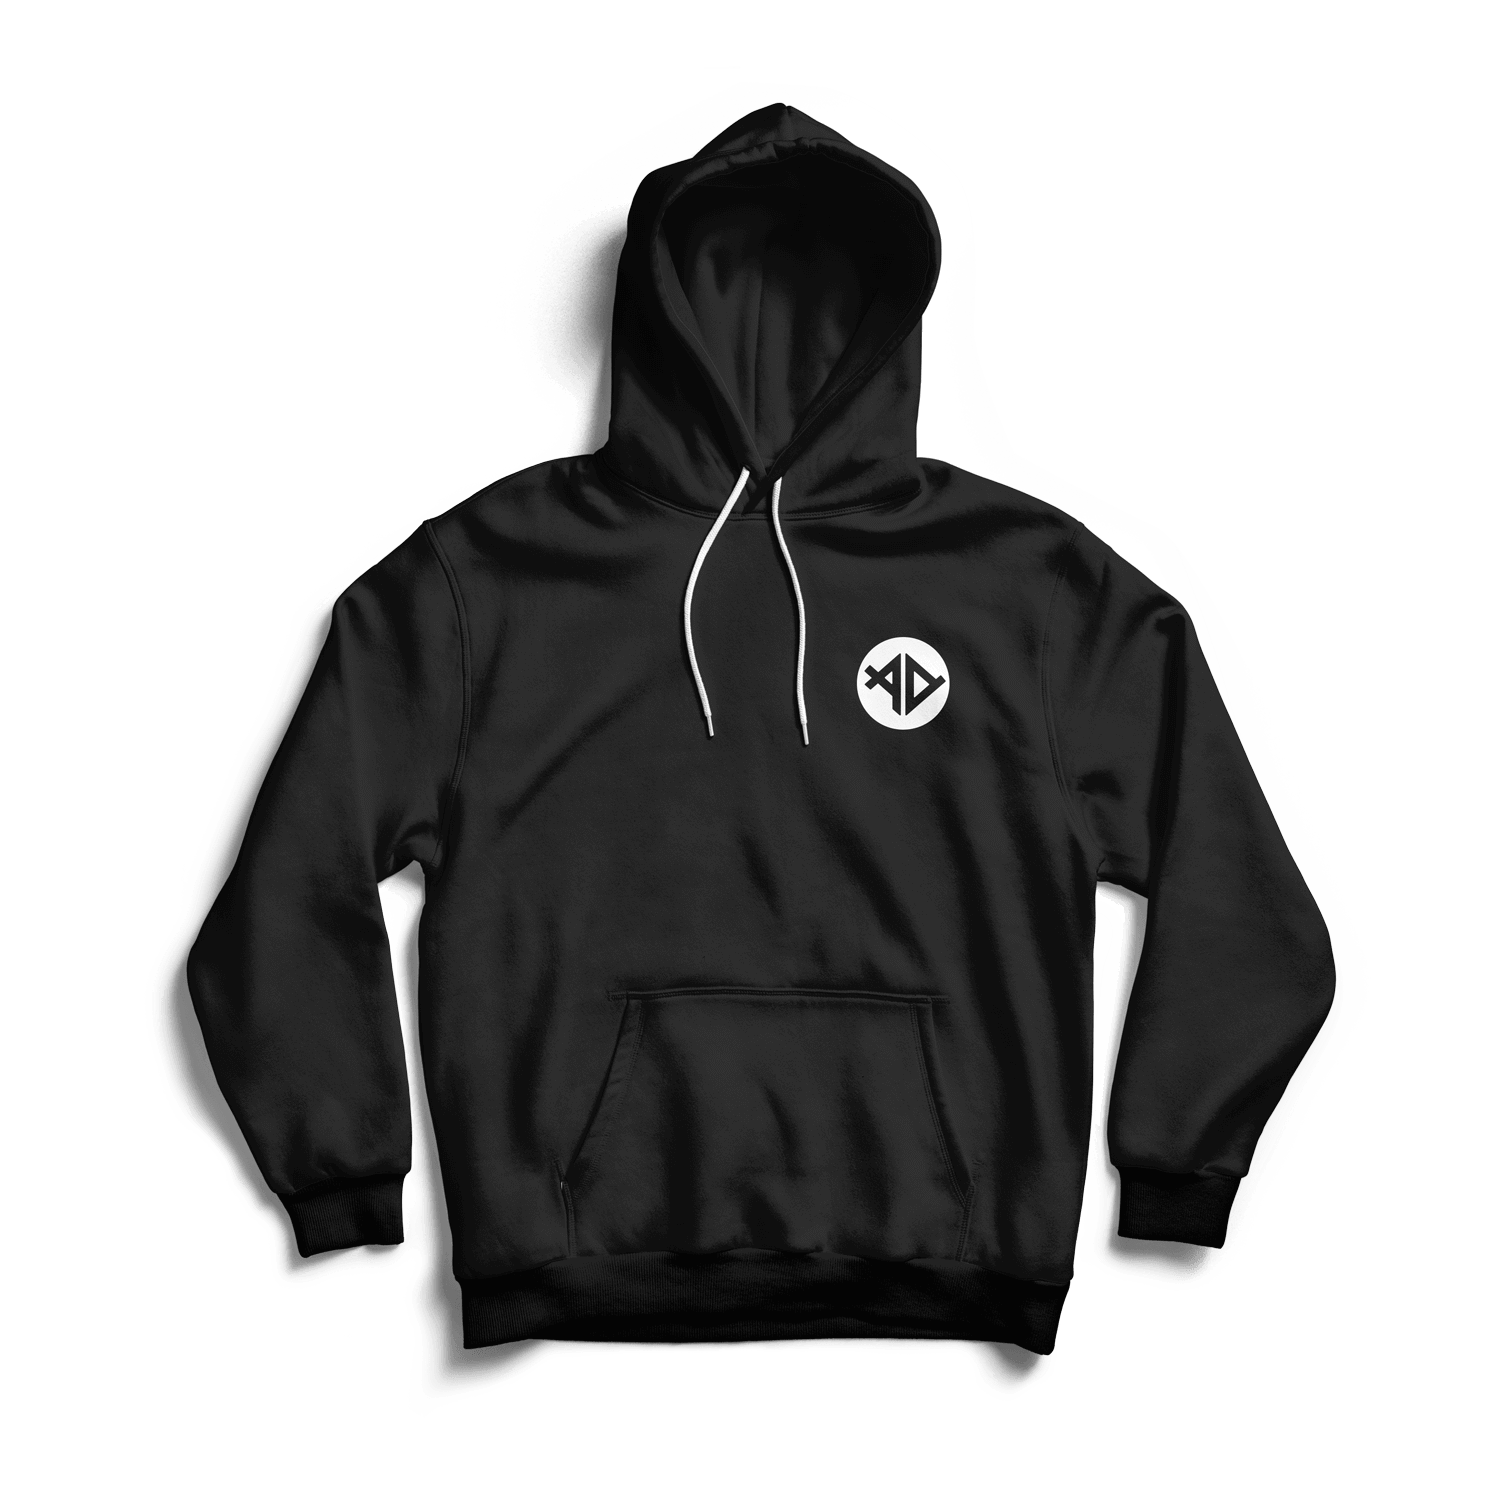 AD_hoodie_front